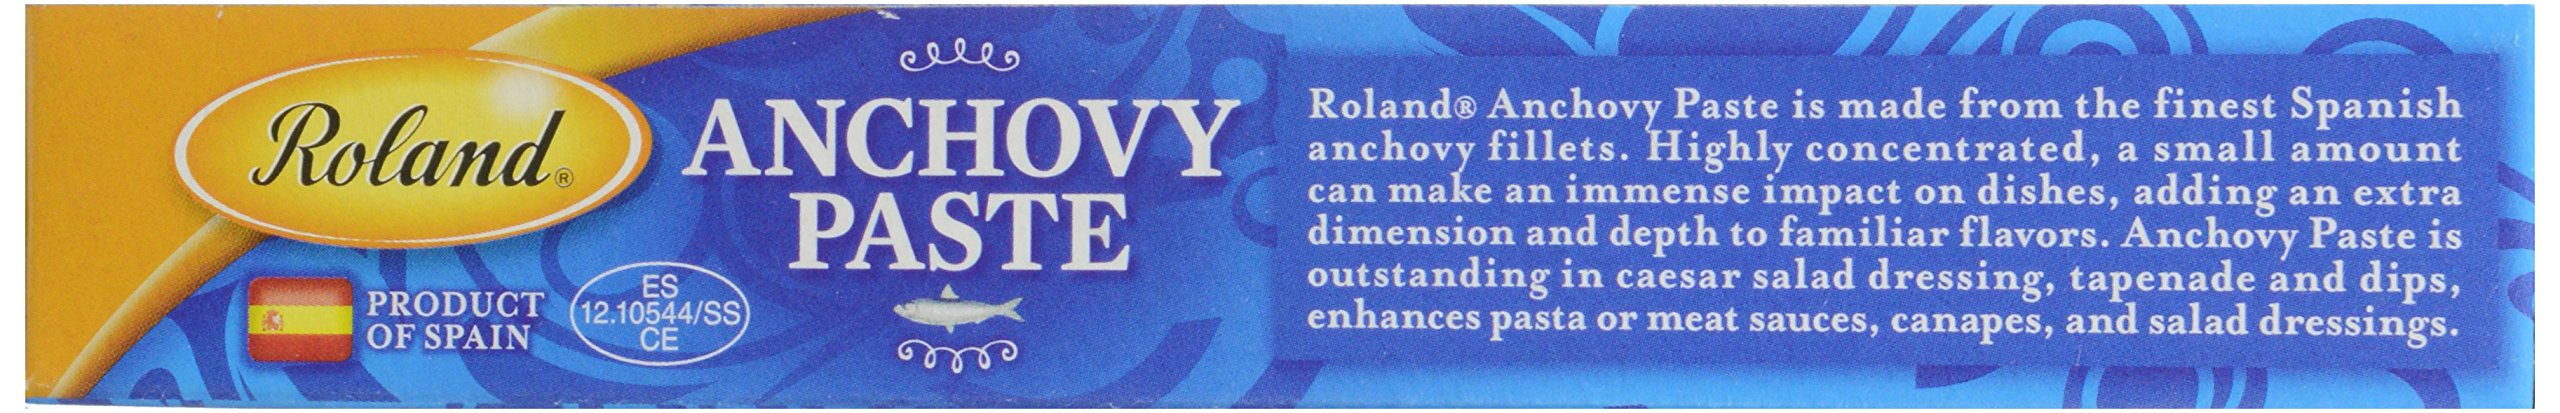 Roland Products Anchovy Paste 2 oz. 6 Anchovy Paste Is Made From The Finest Spanish Anchovies, Ground Into A Fine Paste Reddish Brown Color With A Moderately Pronounced Fish Flavor And A Salty Bite Paste is normally kept under cool temperatures, but it will holdup under heat